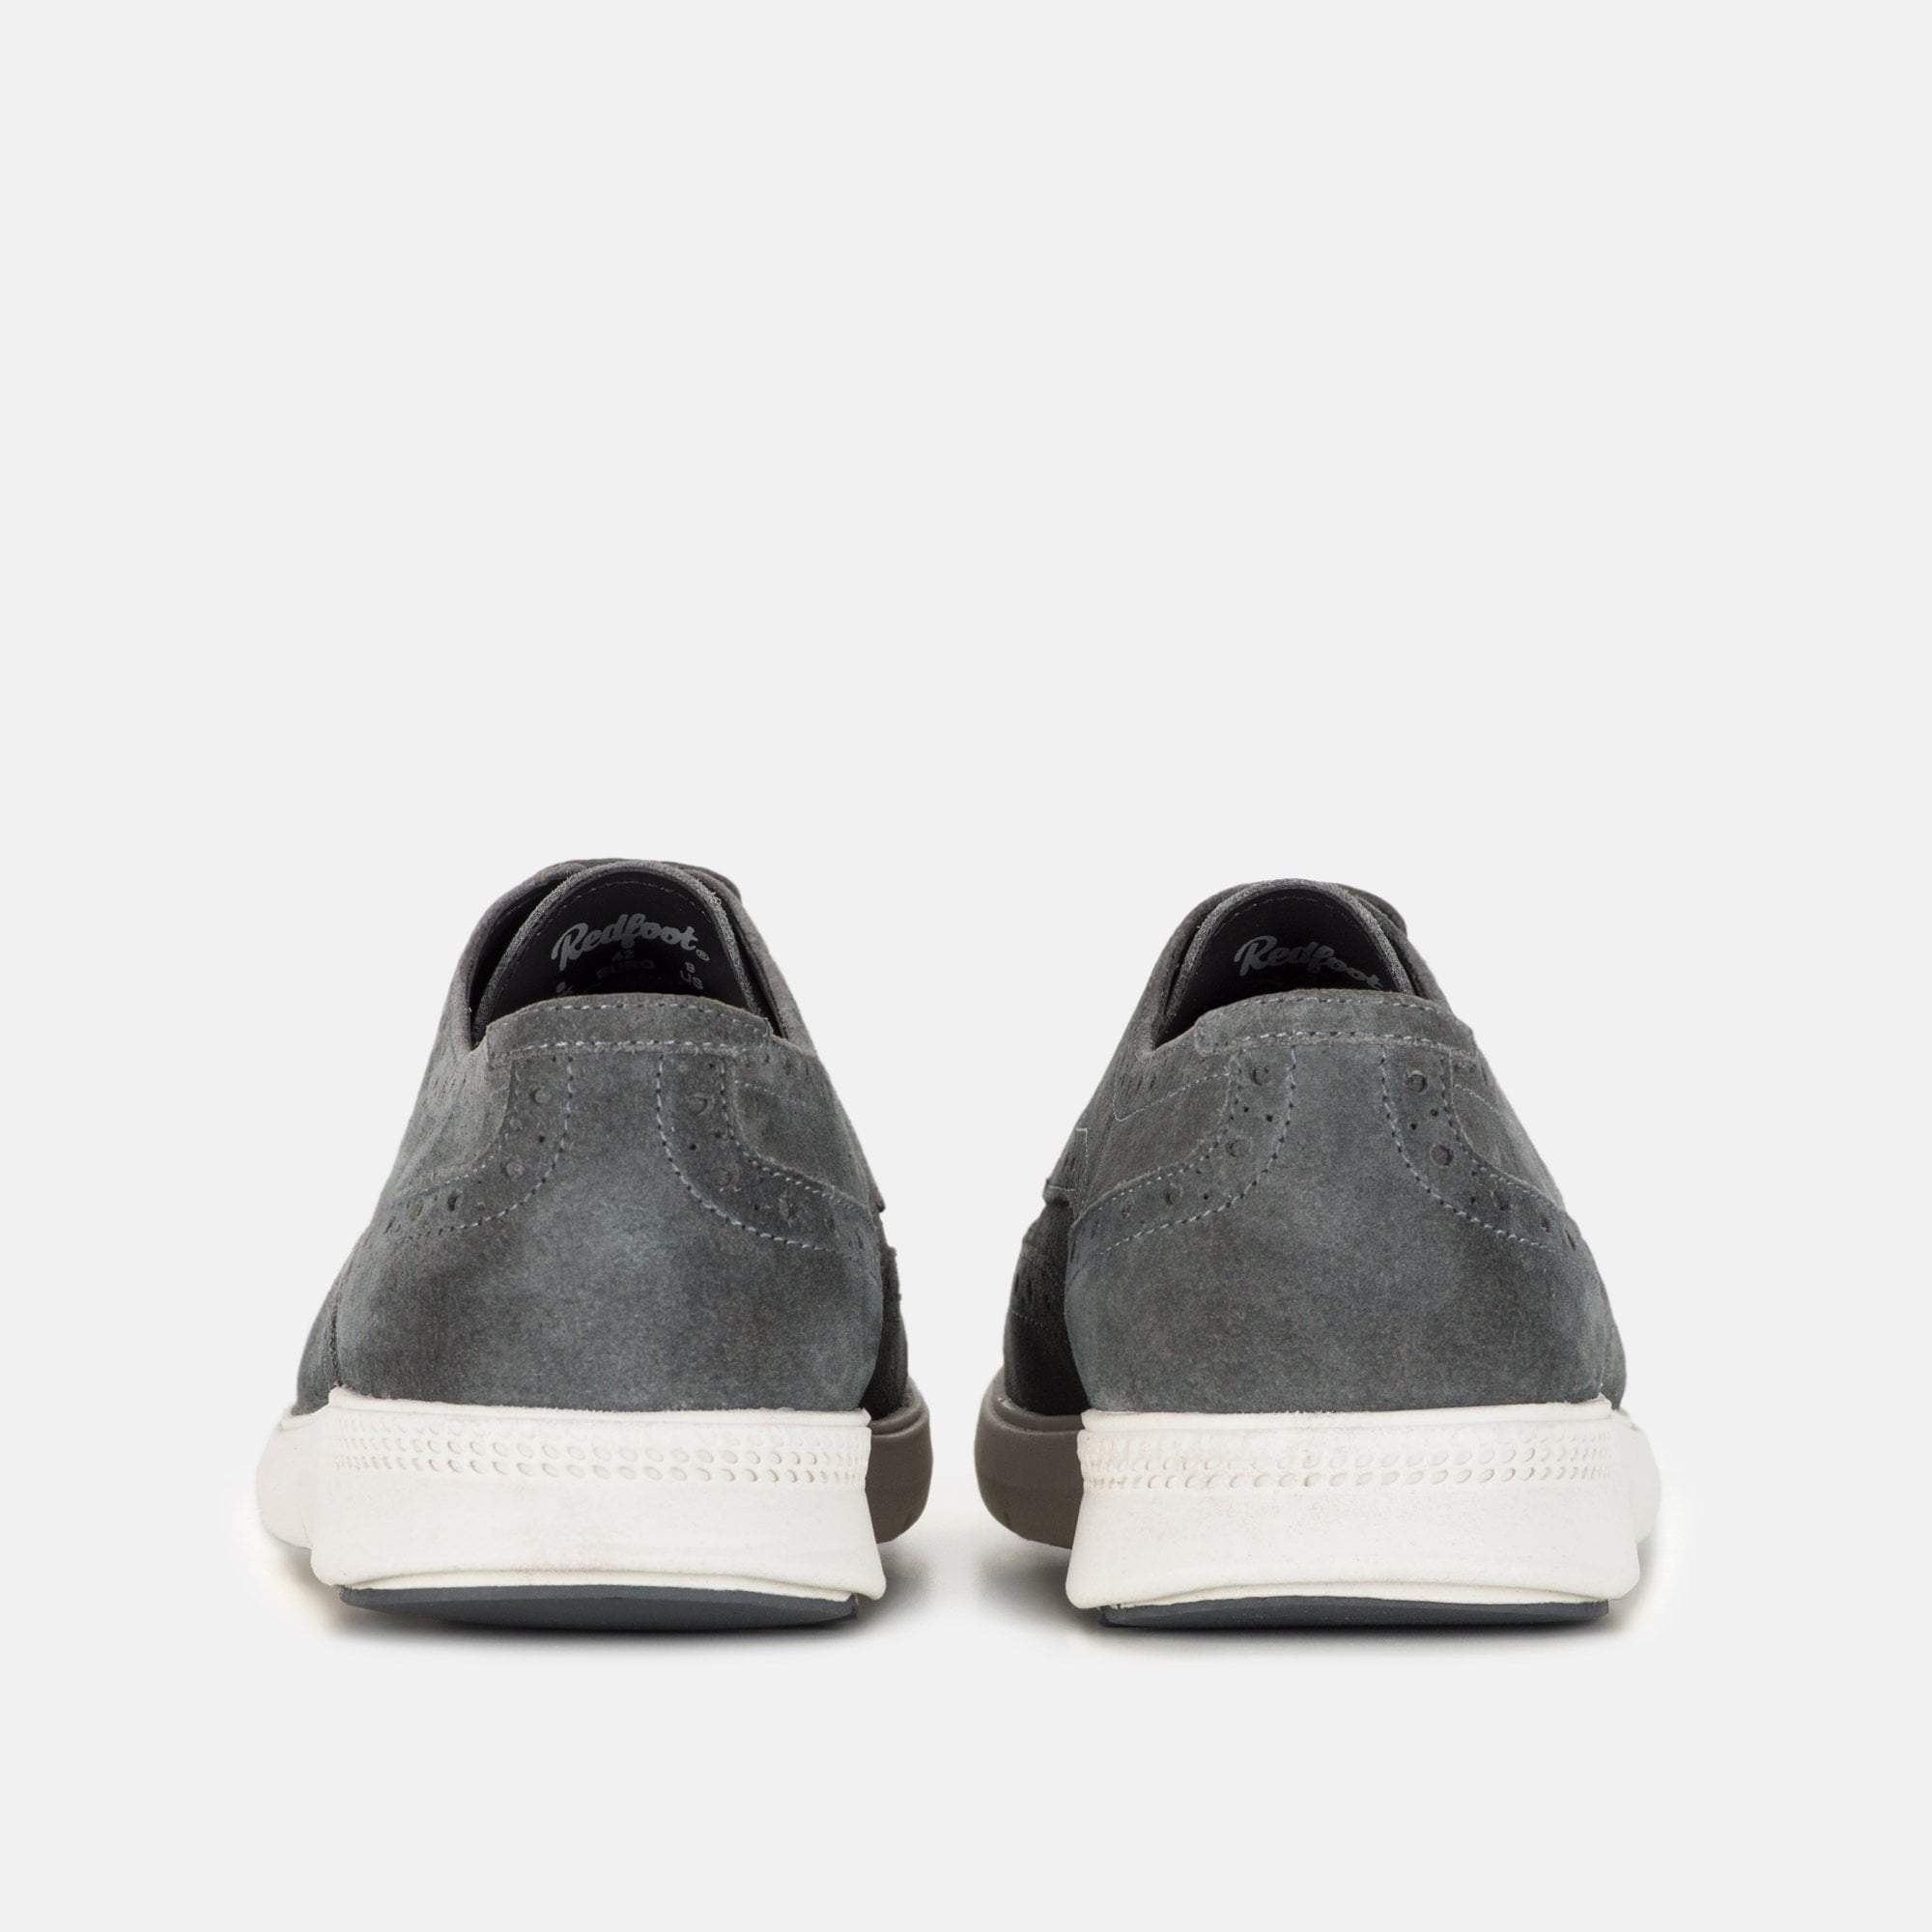 MORRISON GREY CASUAL DERBY SHOE